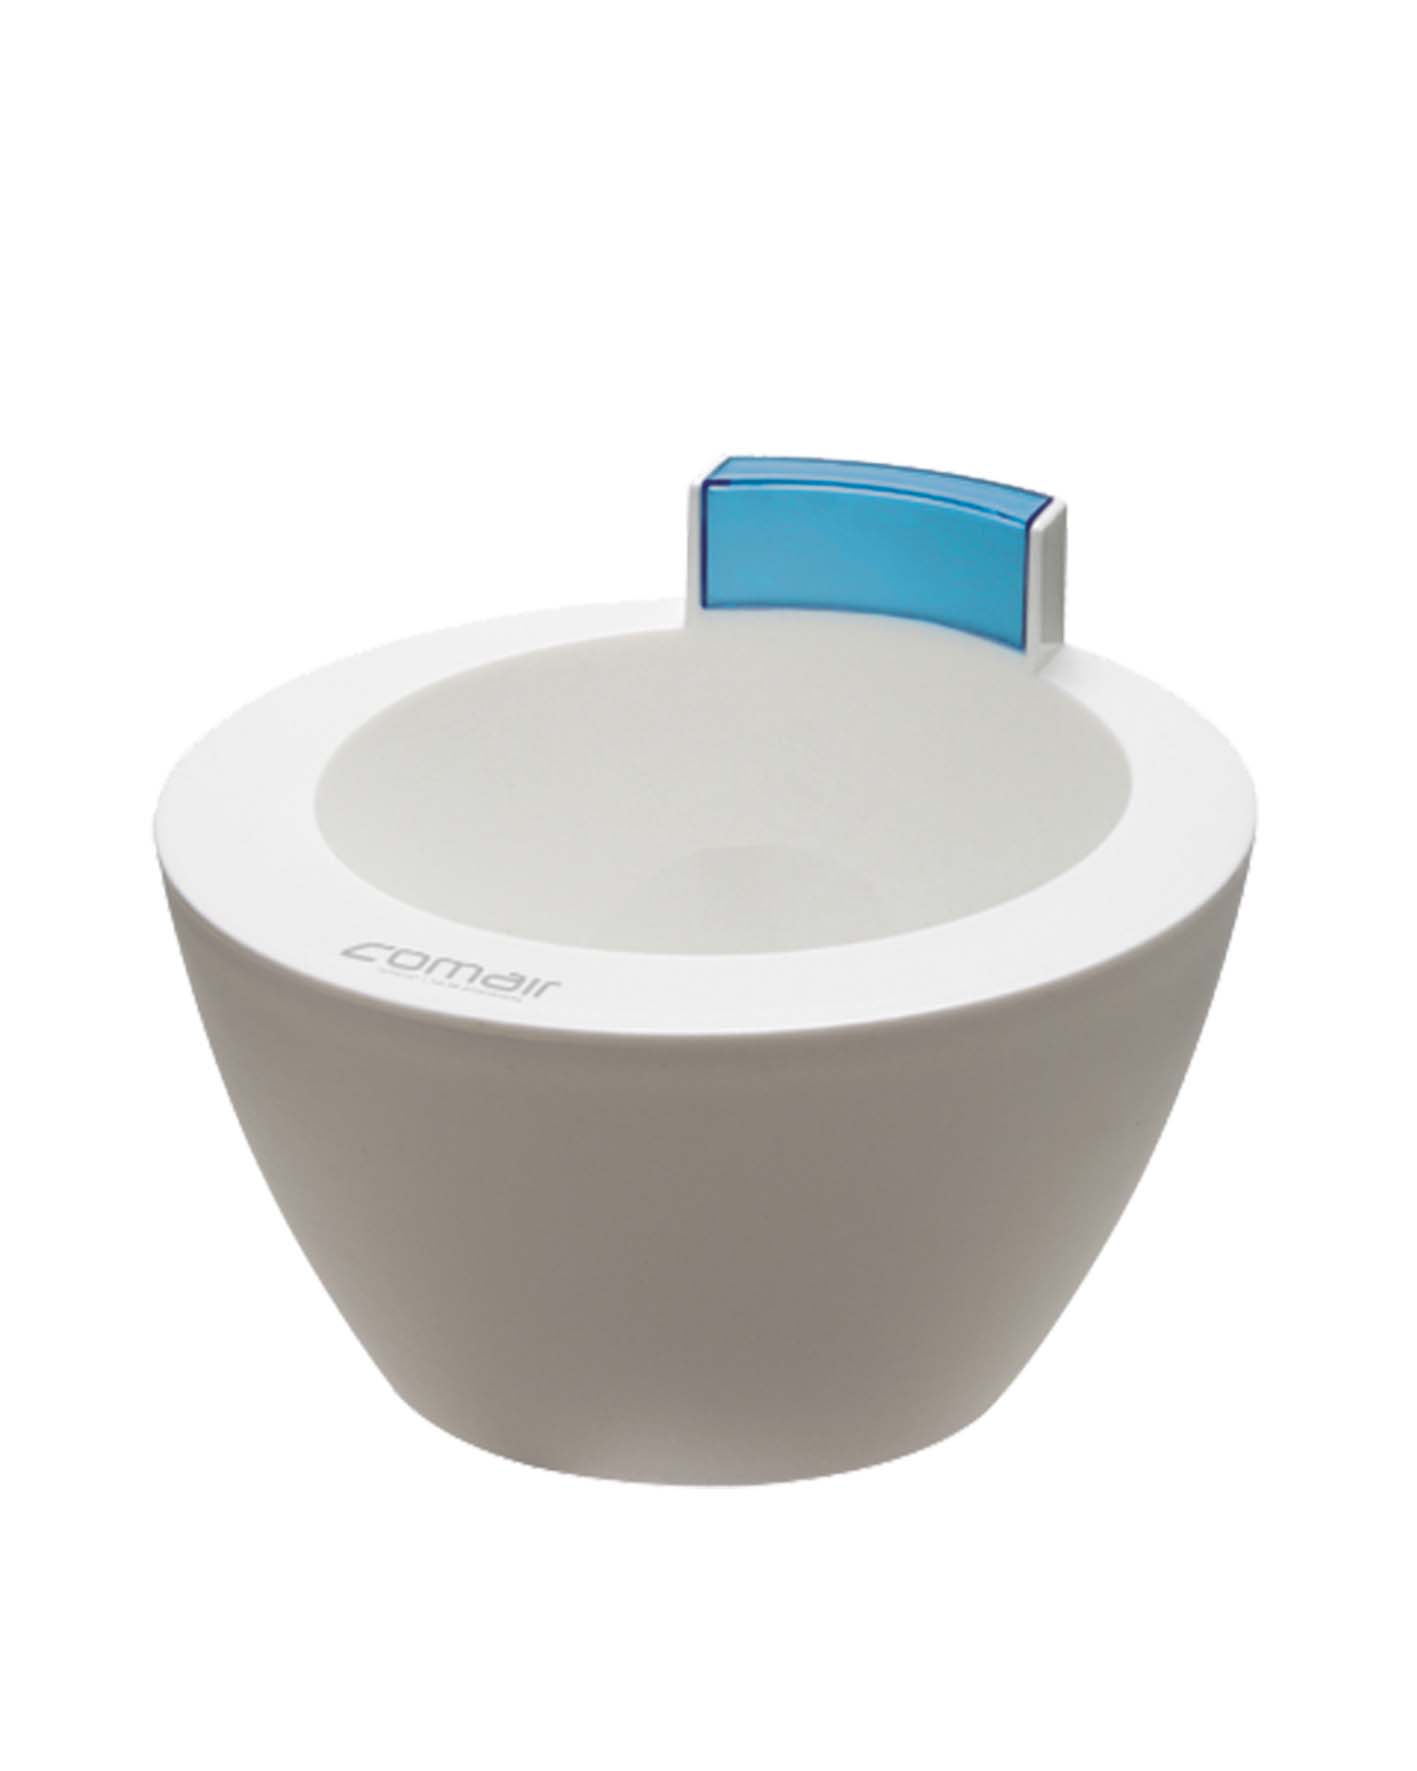 Treatment-Bowl-white-blue